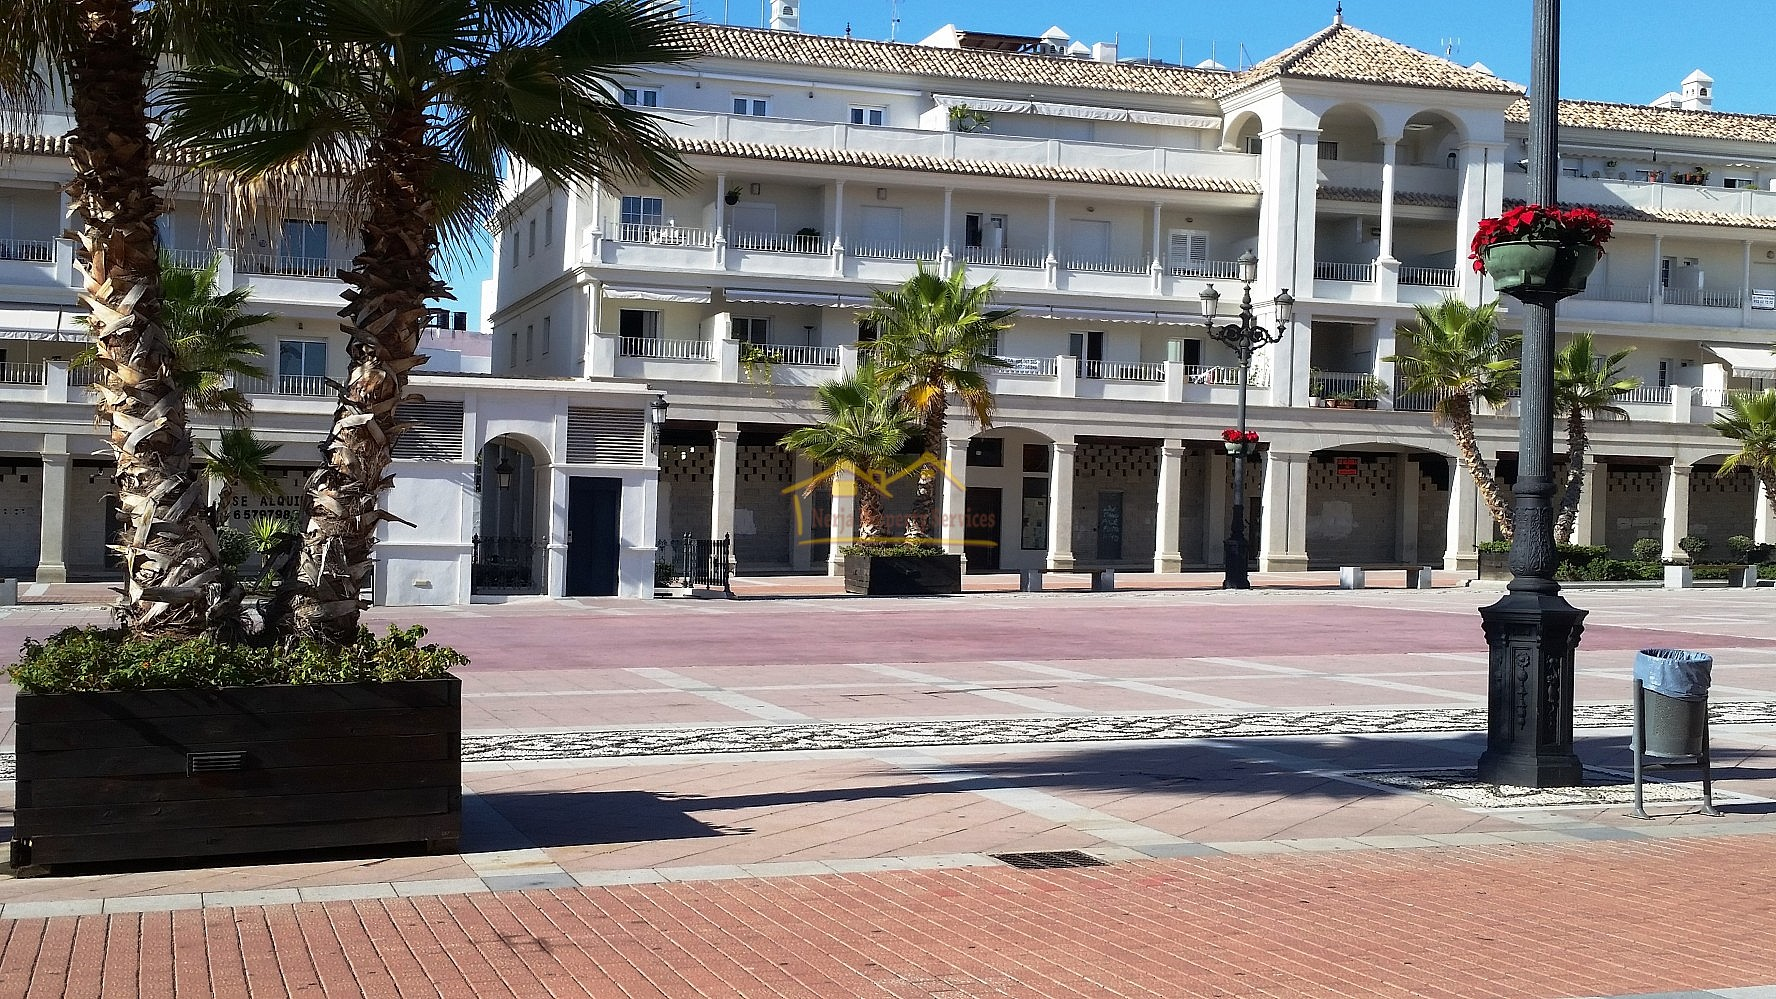 Picture of Commercial Premises in Nerja